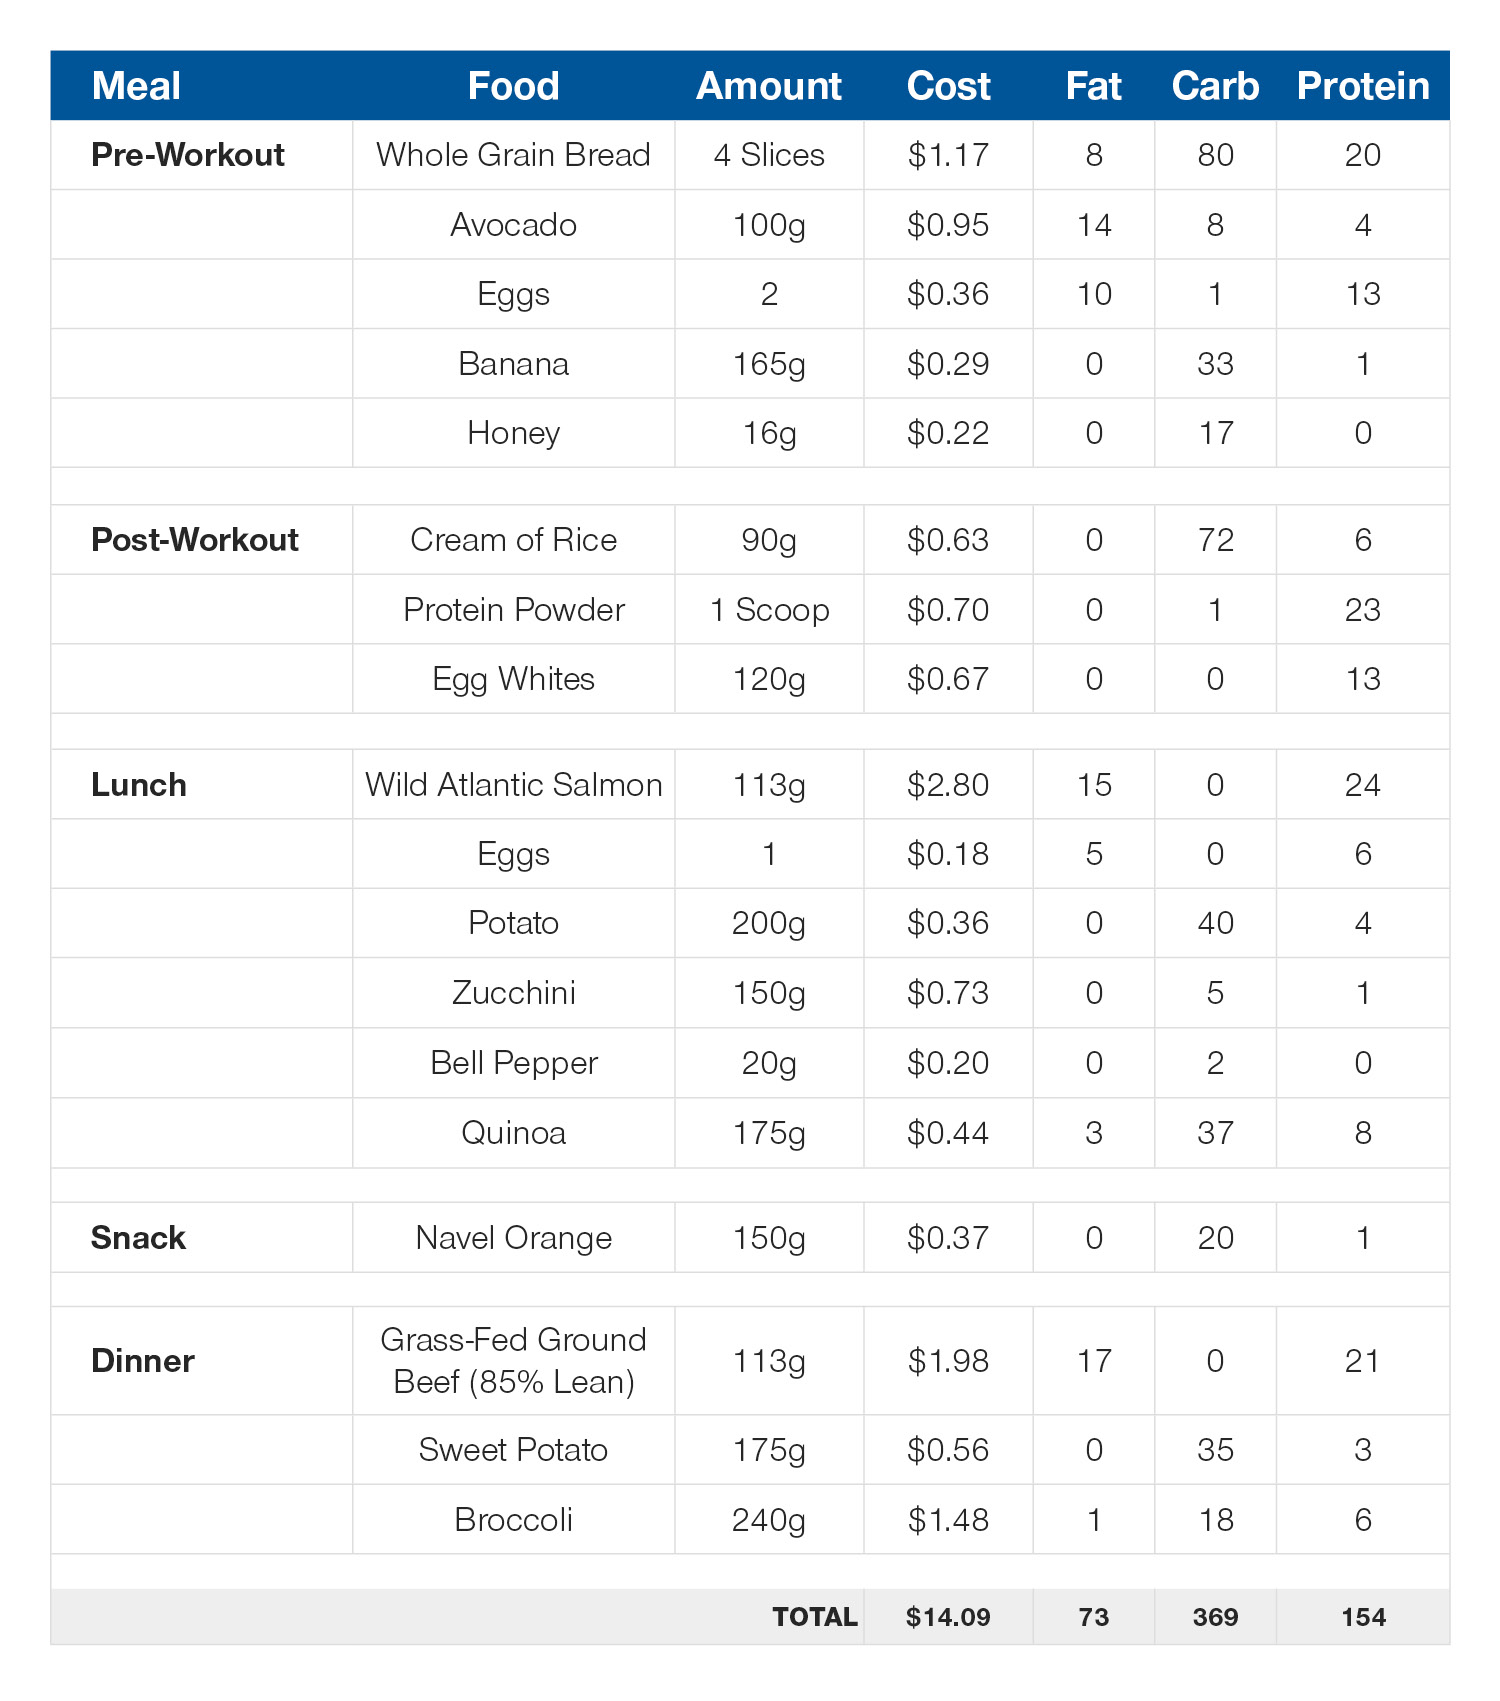 Daily meal plan: 155g protein, 72g fat, 370g carb